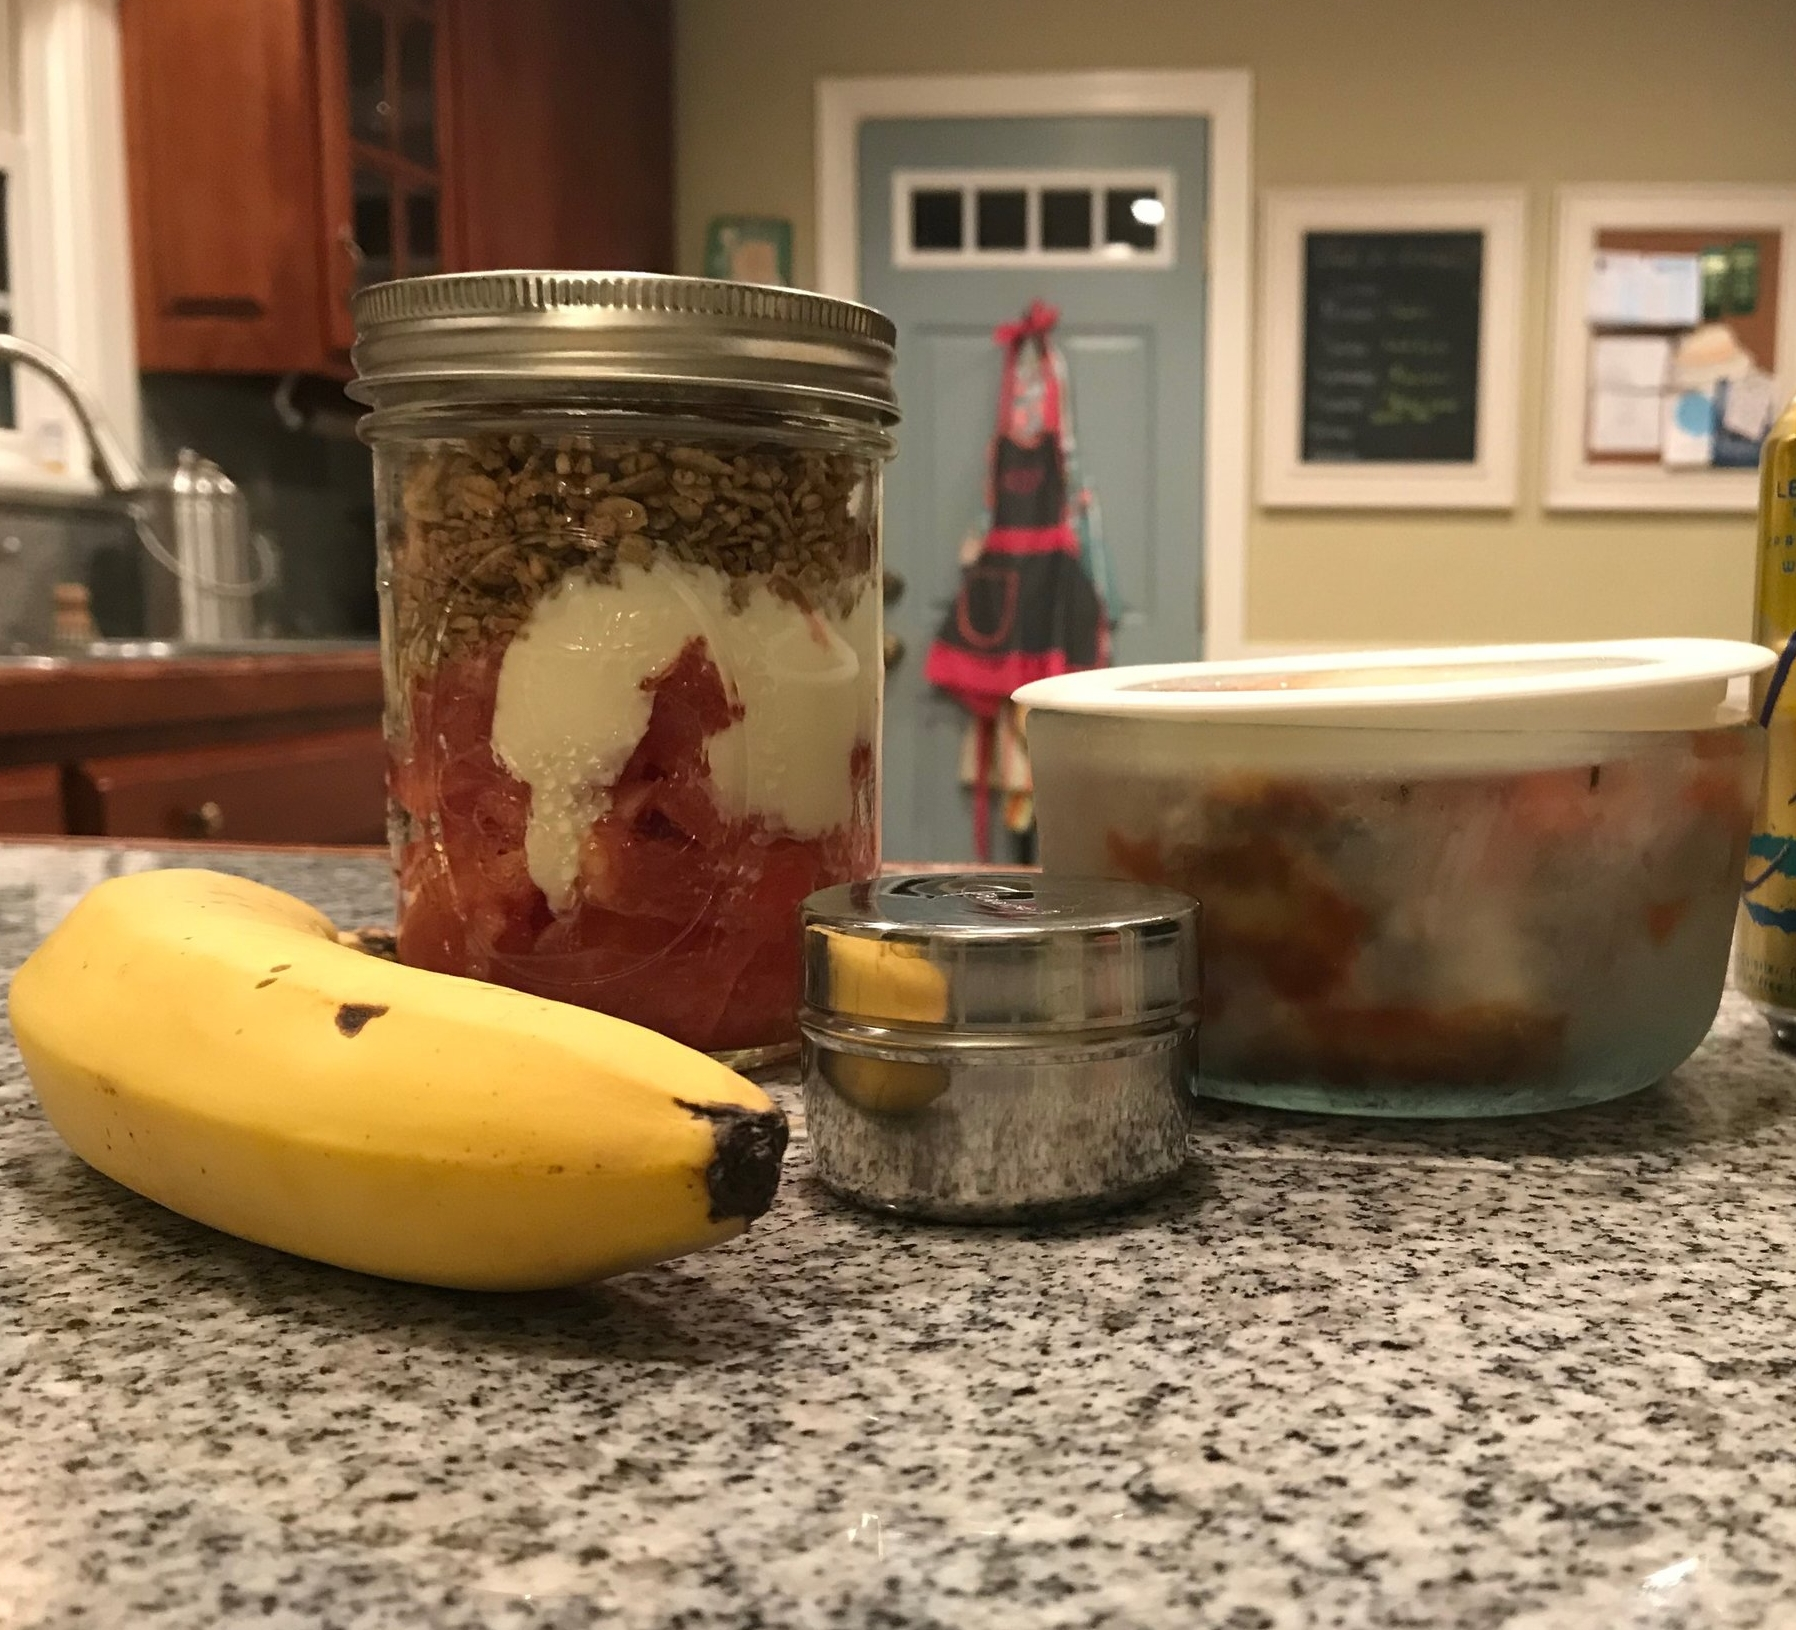 Grown up lunch and snacks for work: frozen eggplant parmesan, fruit and yogurt parfait, banana, and a little container of chocolate chips.